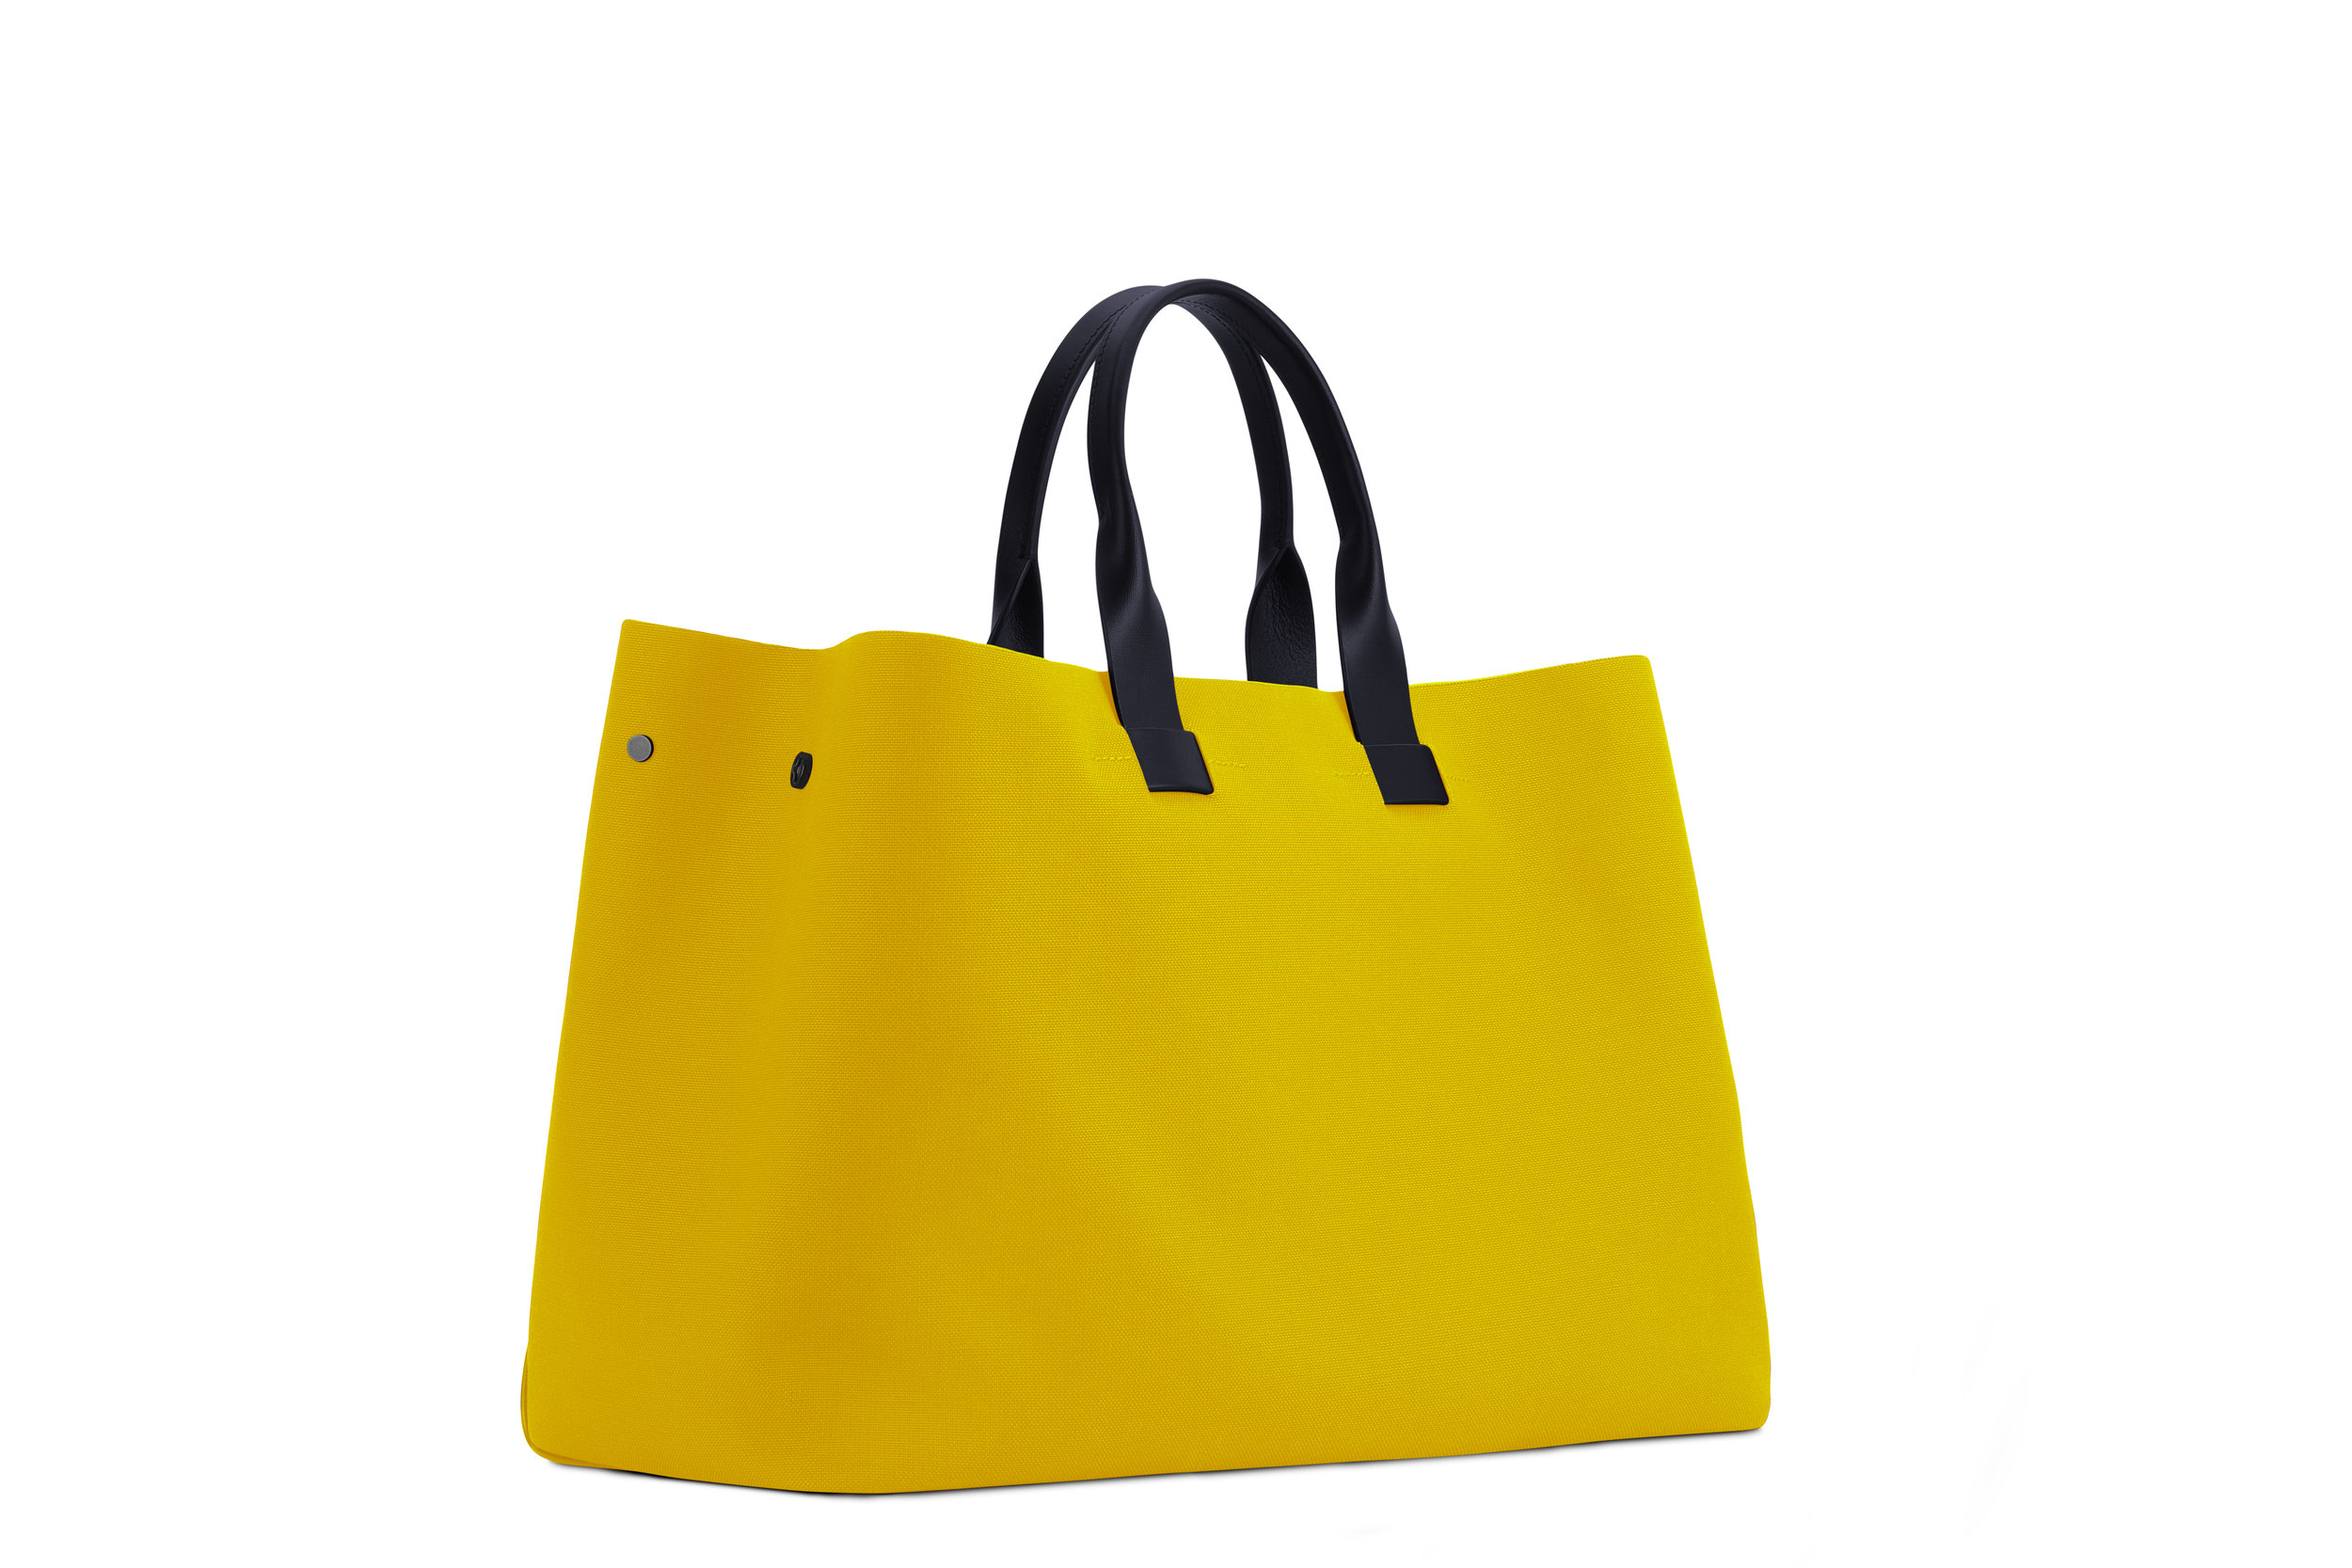 Troubadour Summer Tote - Yellow.jpg